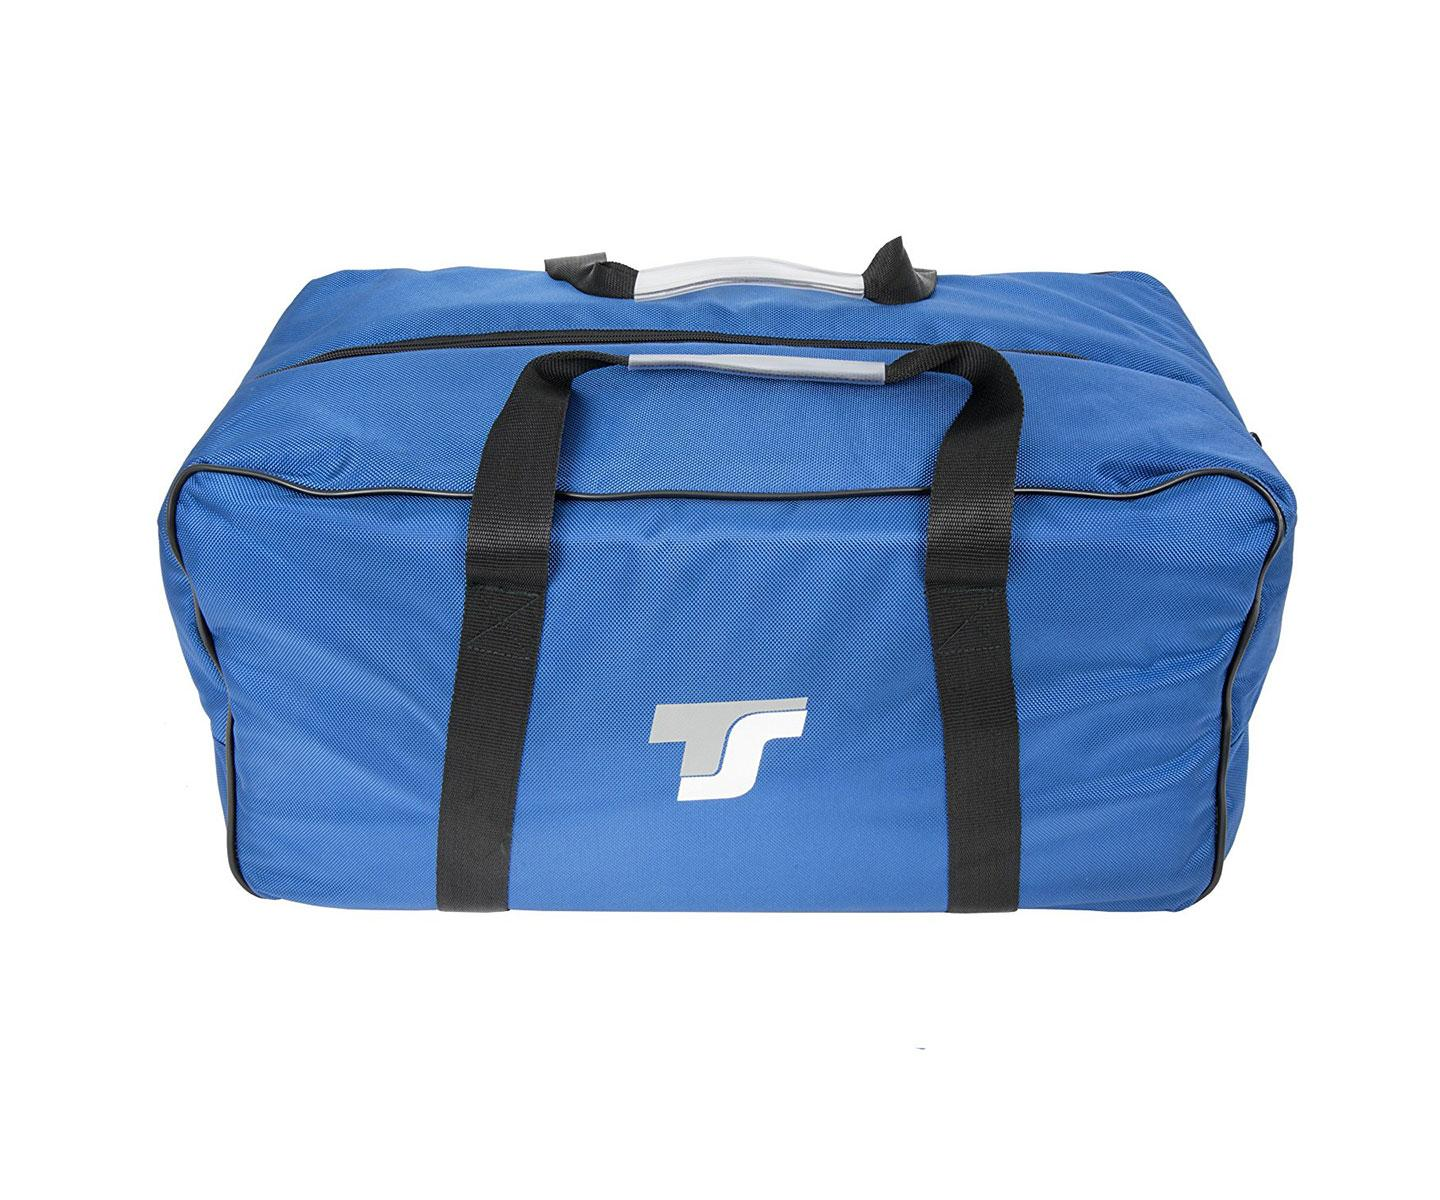 TS-Optics Carrying Case with extra-thick padding - length 540 millimetres   [EN]